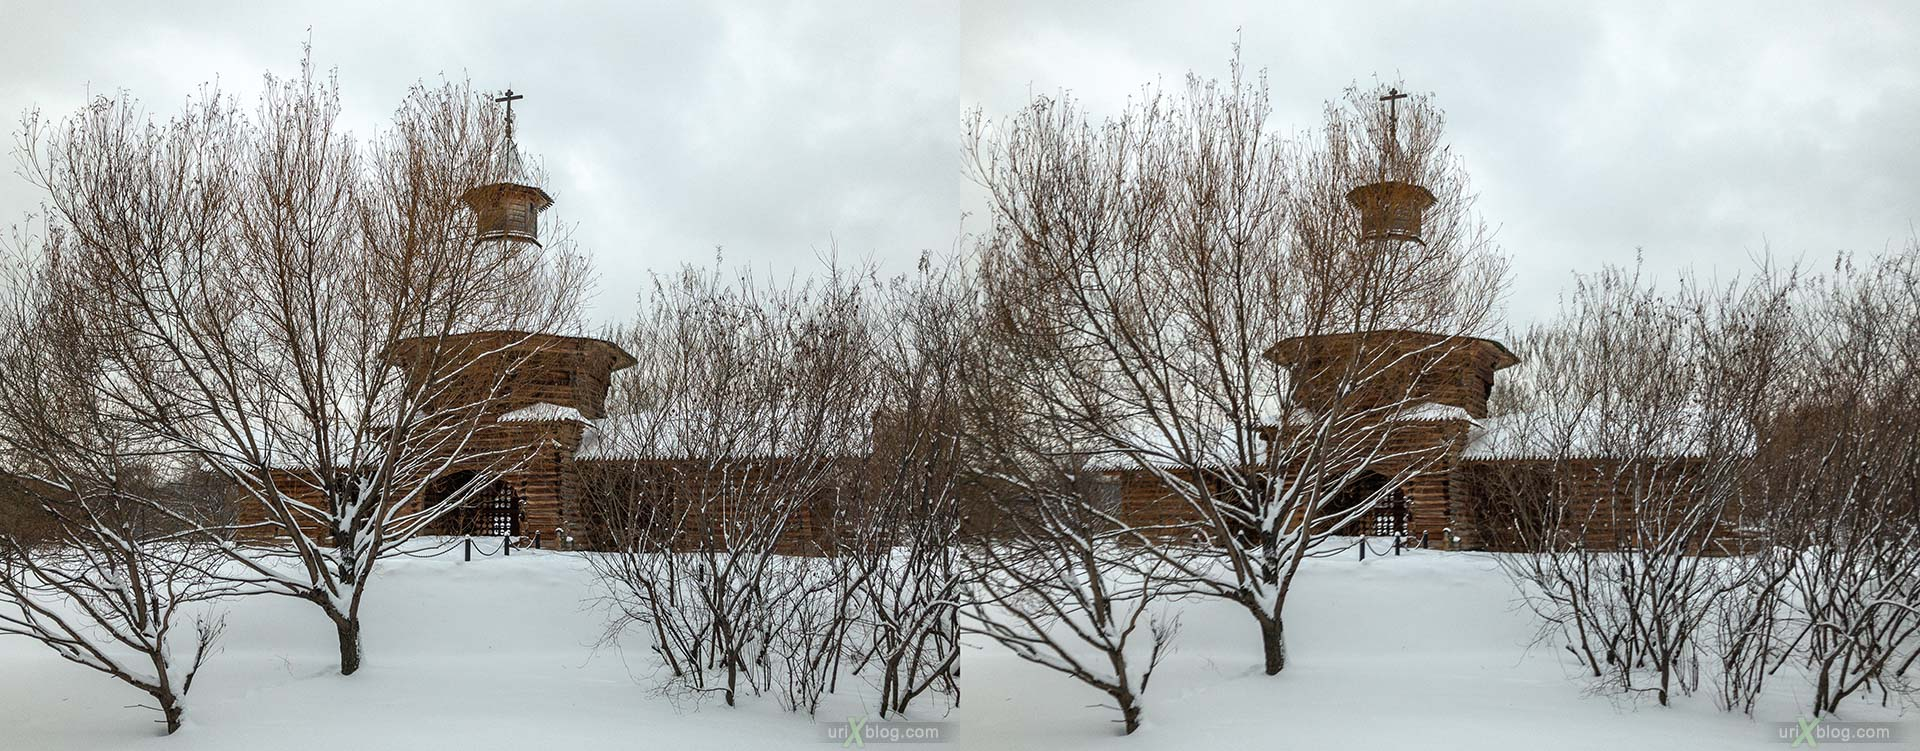 Russian Wooden Architecture, tower of the Nikolo-Korelsky monastery, Kolomenskoye, park, wooden building, winter, snow, Moscow, Russia, 3D, stereo pair, cross-eyed, crossview, cross view stereo pair, stereoscopic